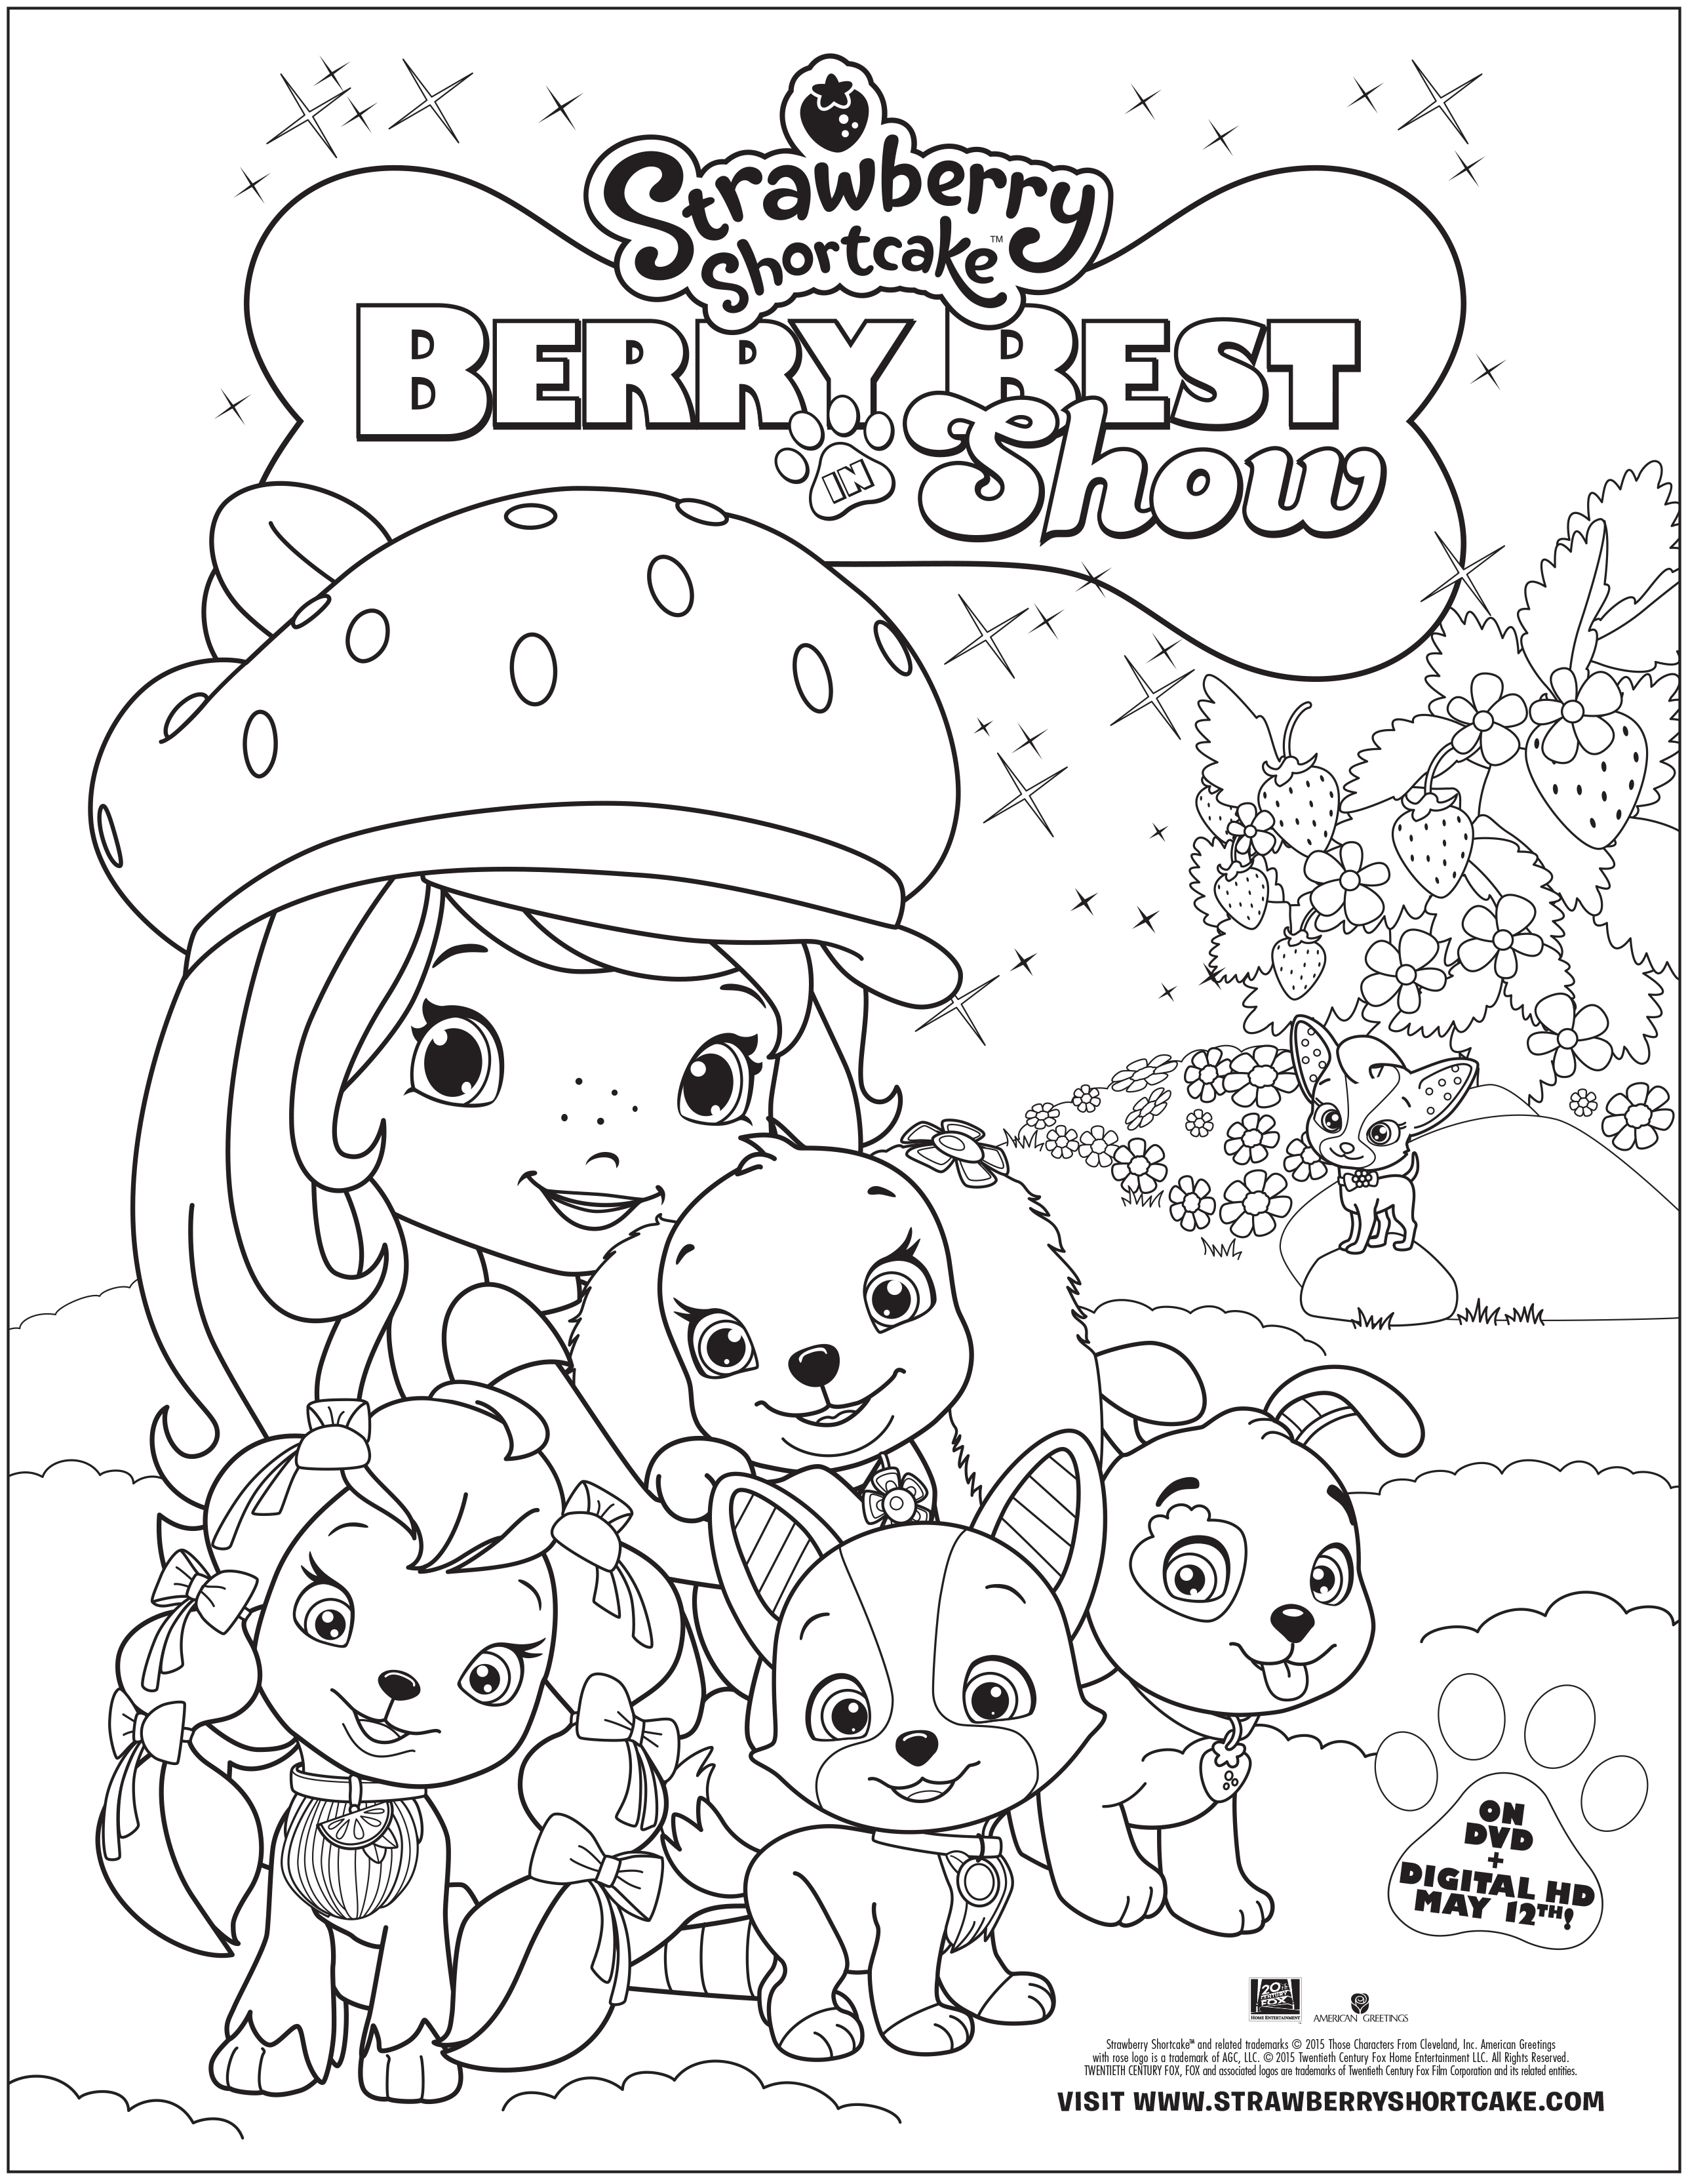 strawberry shortcake coloring pages printable - strawberry shortcake berry best in show dvd review and